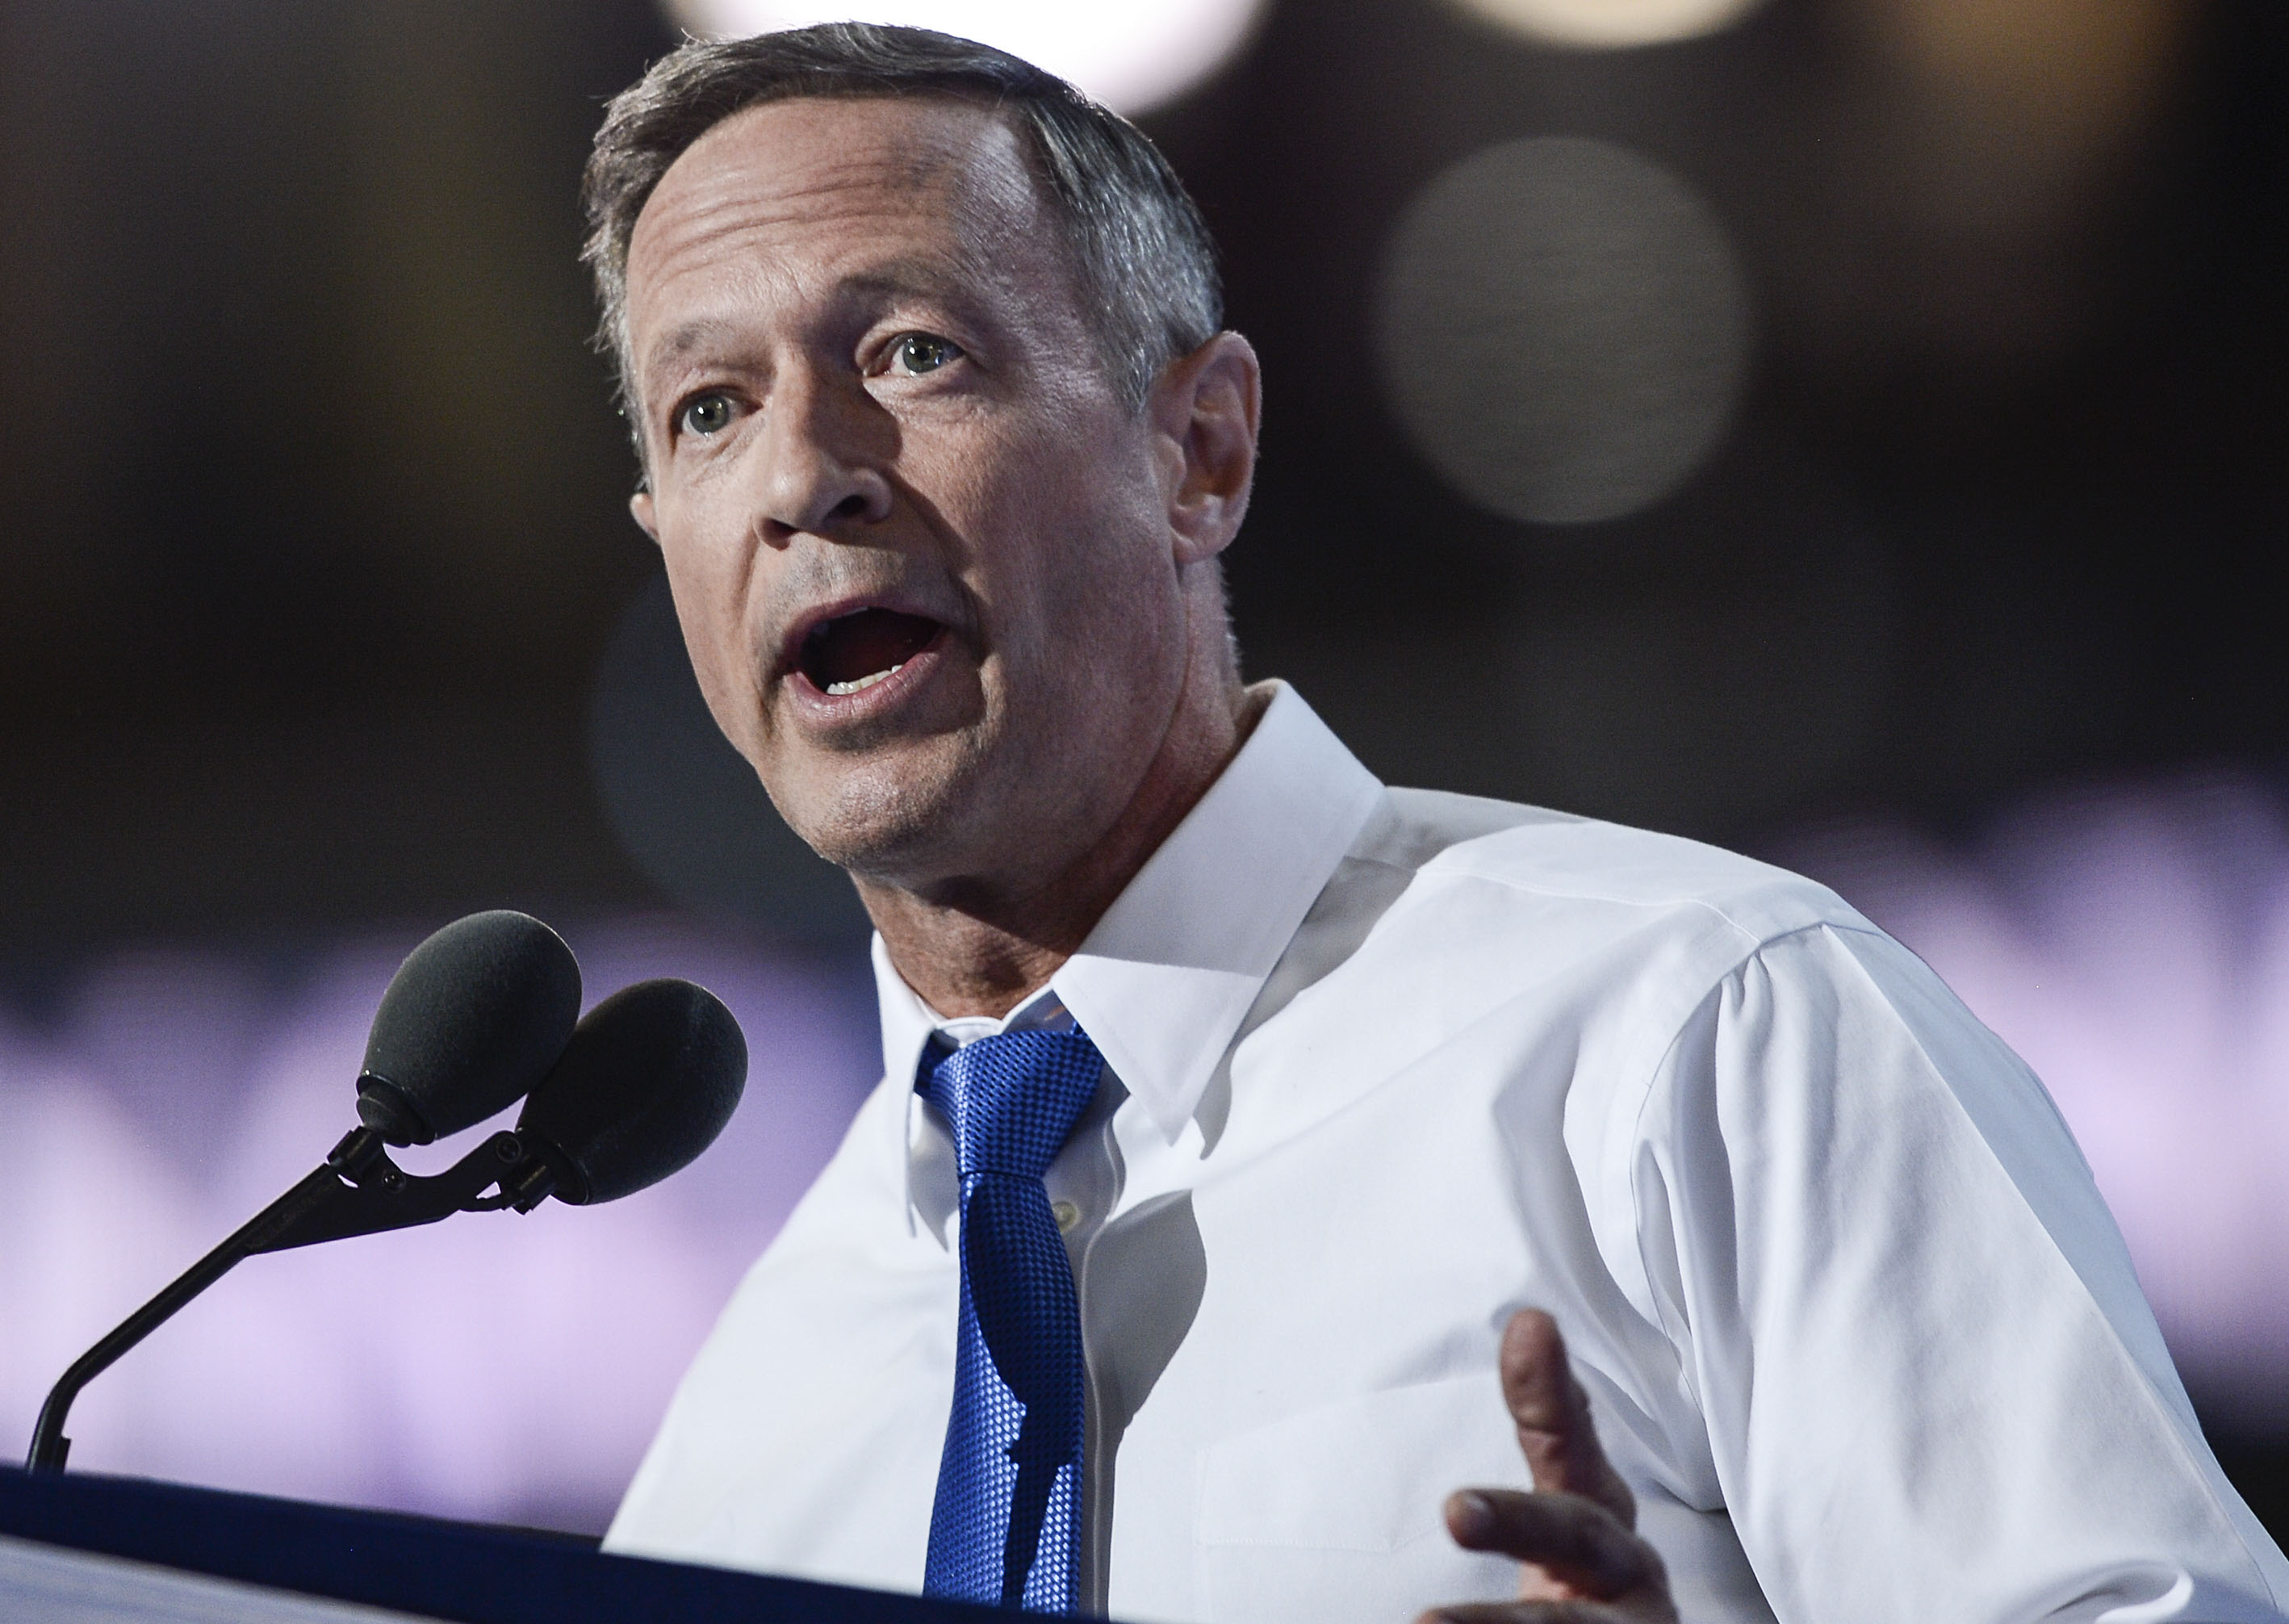 Former Maryland Governor Martin O'Malley speaks during the third day of the Democratic National Convention at the Wells Fargo Center in Philadelphia, PA, on July 27, 2016.